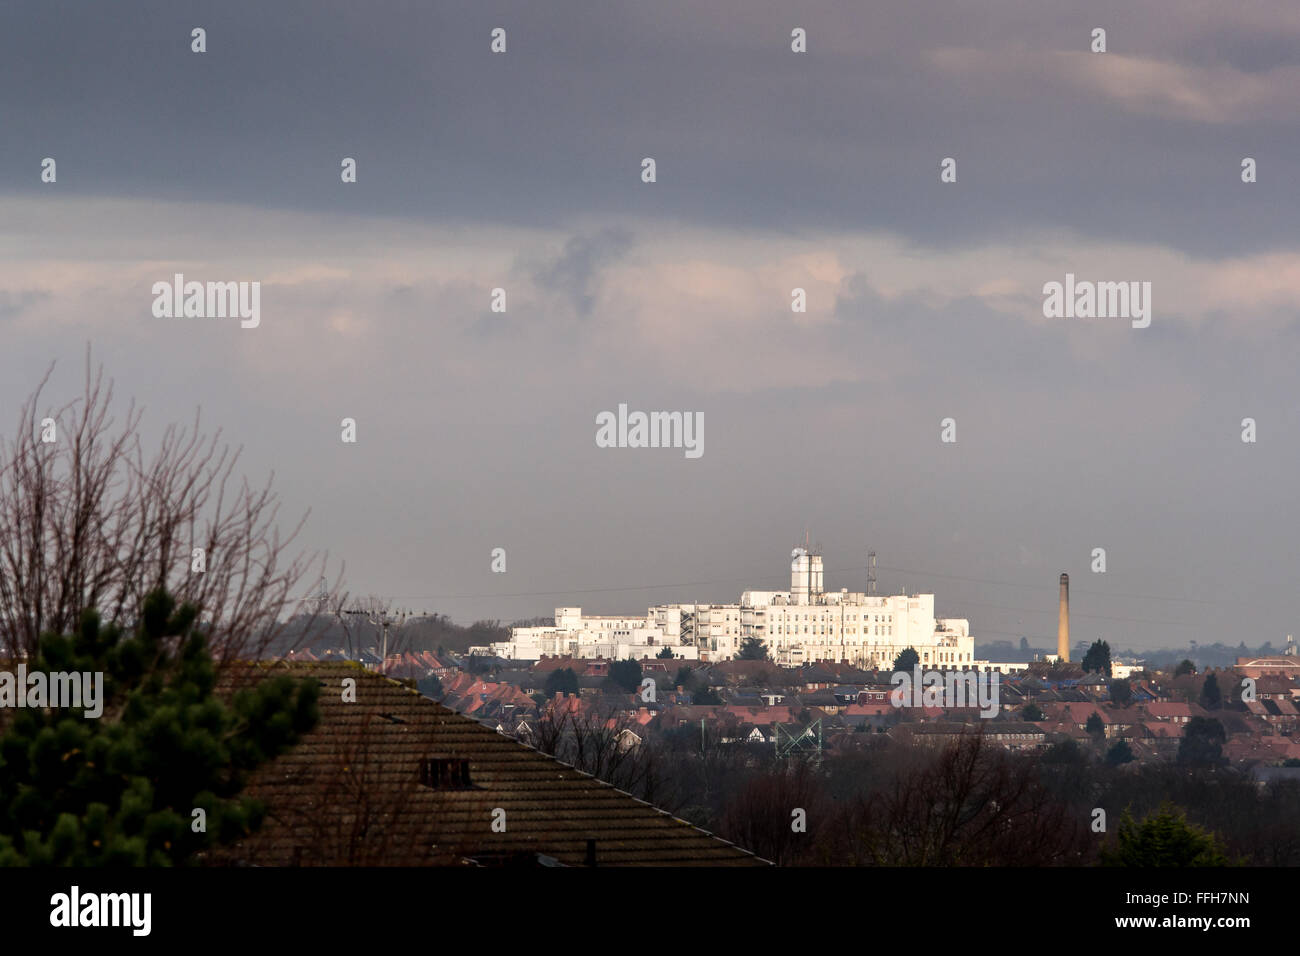 The white buildings of St Helier Hospital and Queen Mary's Hospital for Children in the London Borough of Sutton - Stock Image